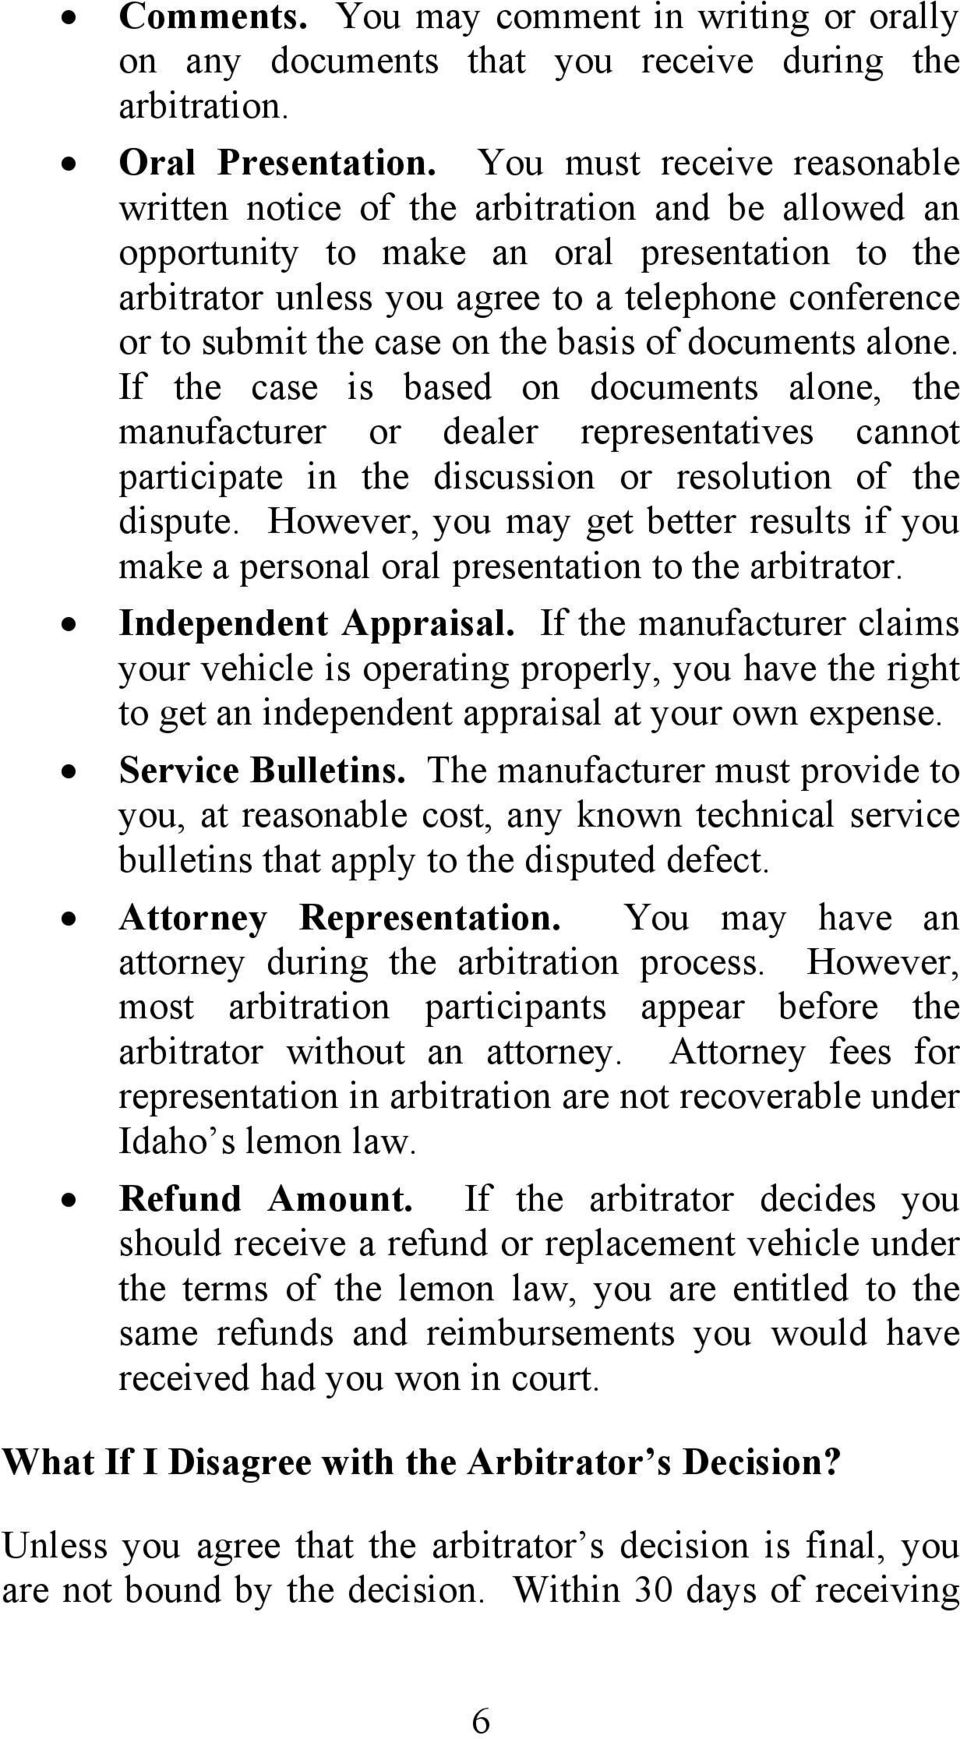 case on the basis of documents alone. If the case is based on documents alone, the manufacturer or dealer representatives cannot participate in the discussion or resolution of the dispute.